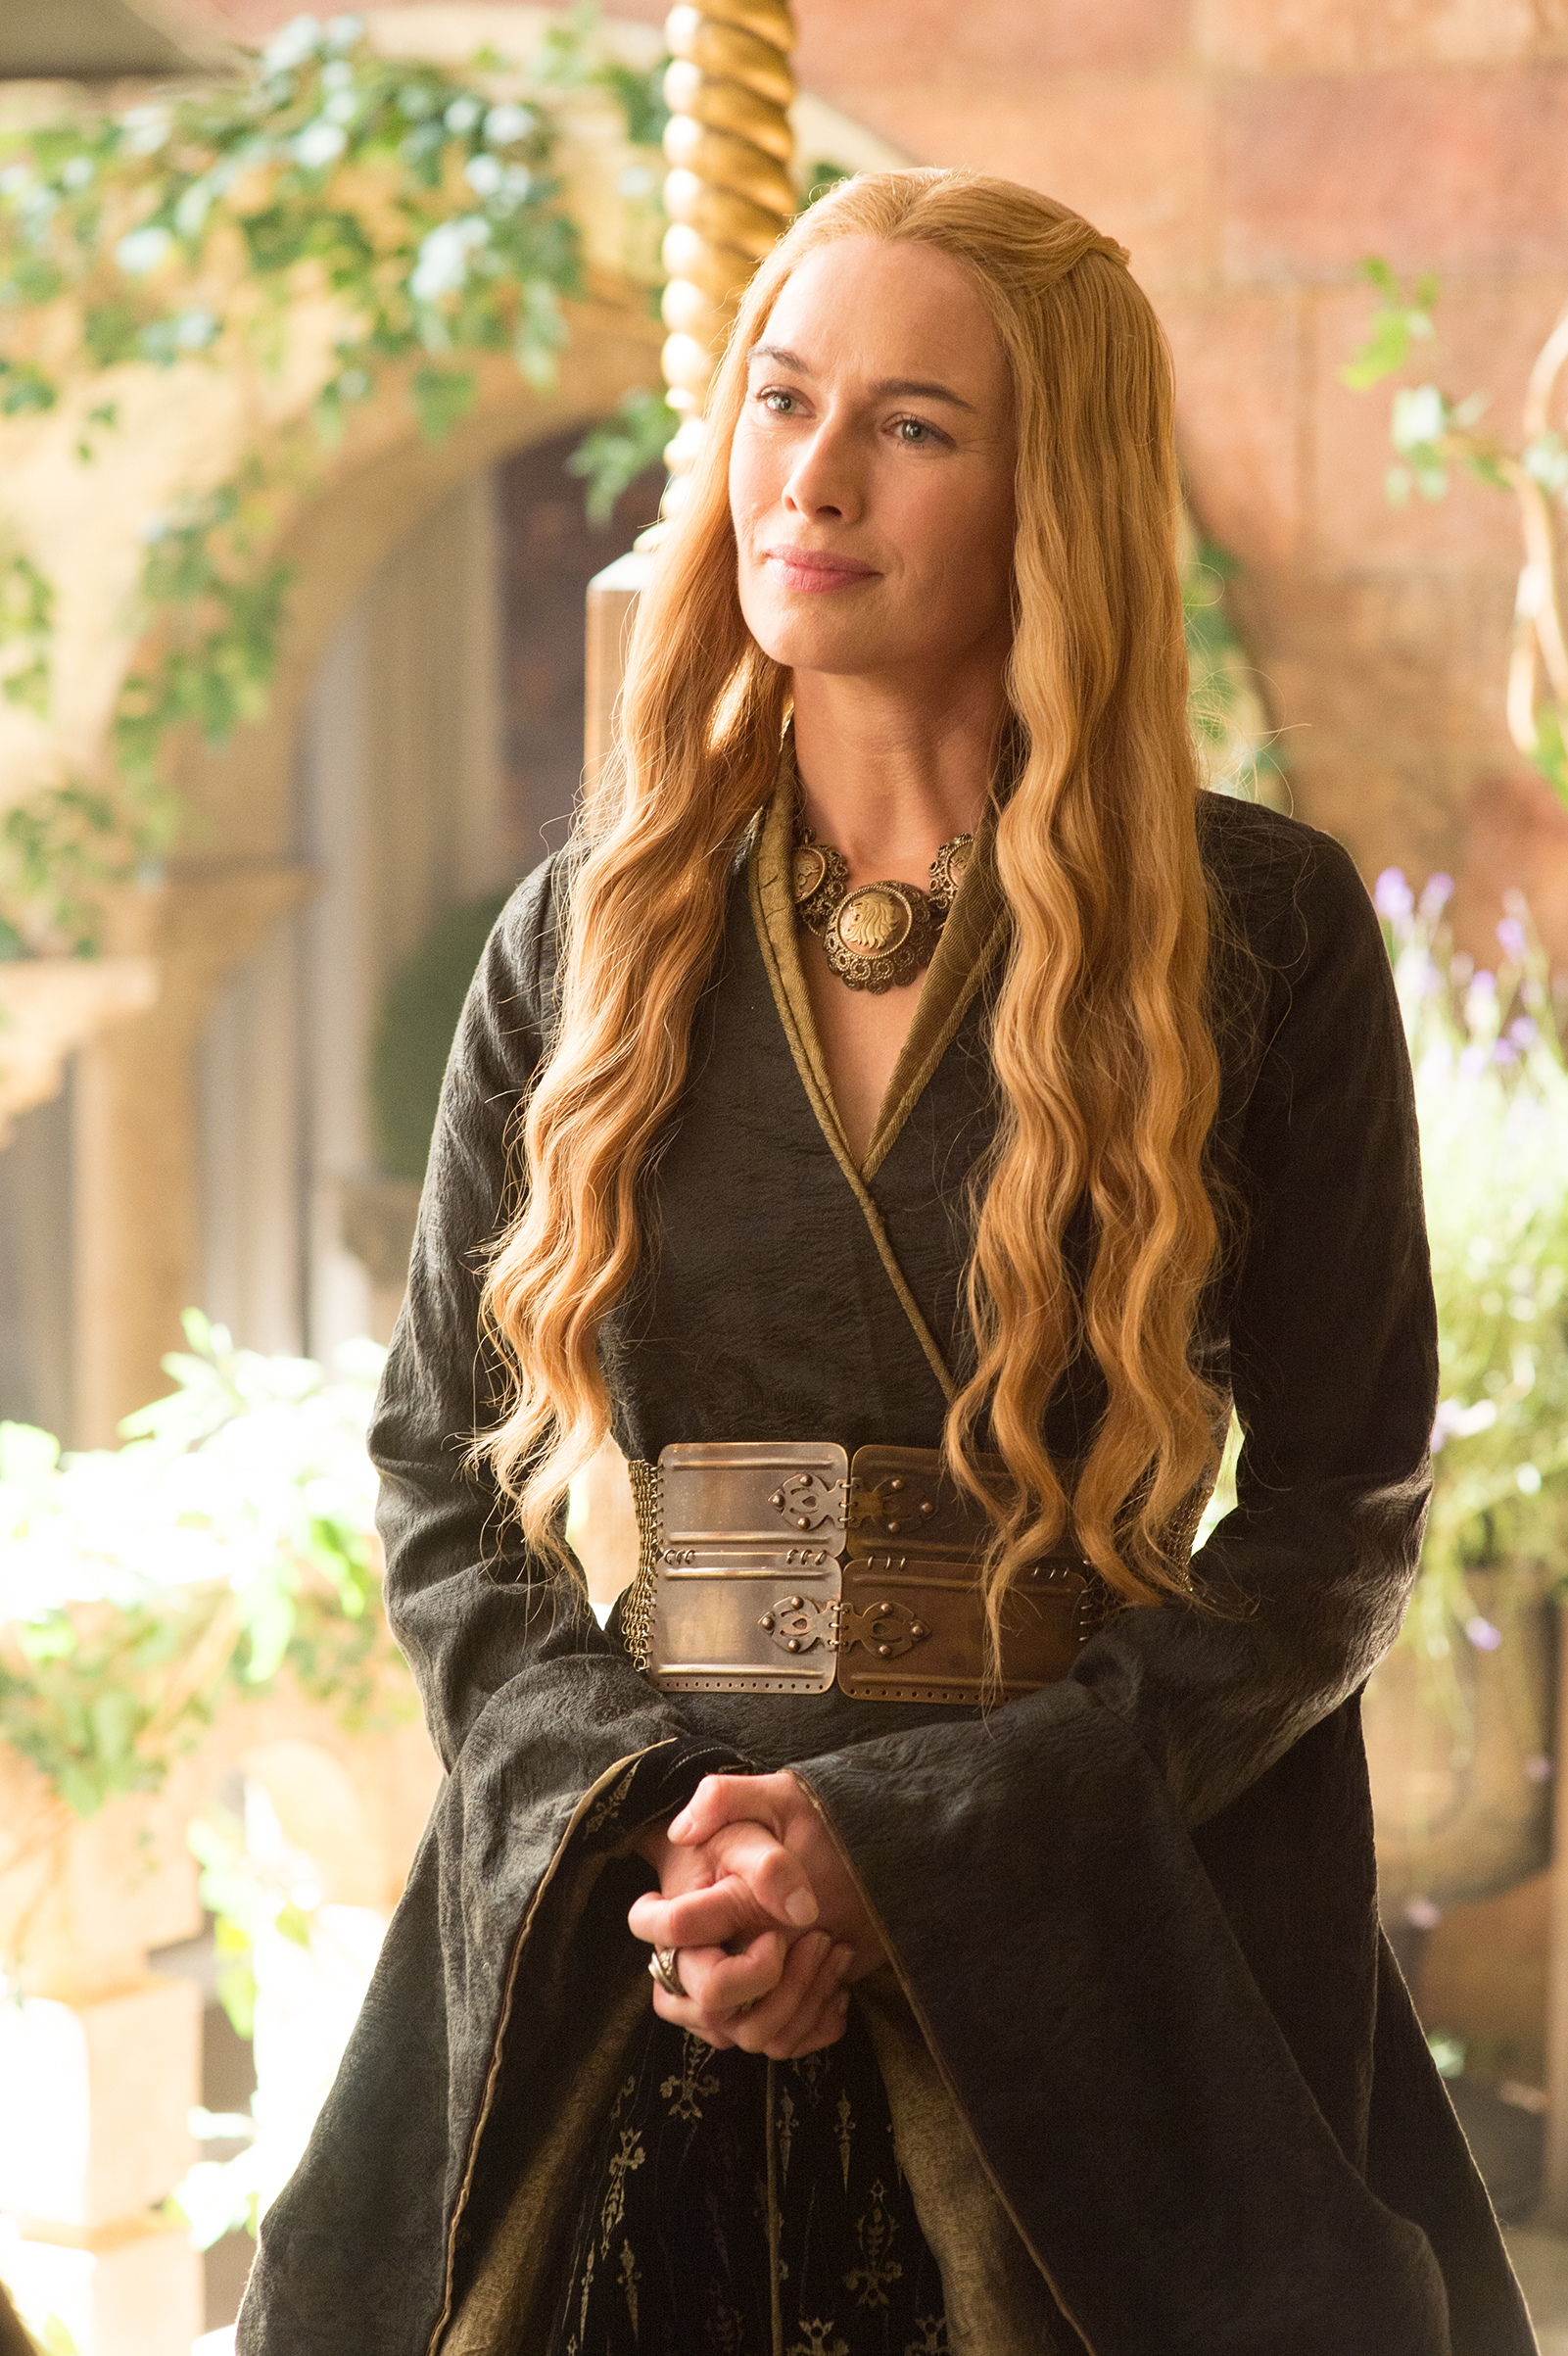 Cersei Lannister in Season 5 of Game of Thrones